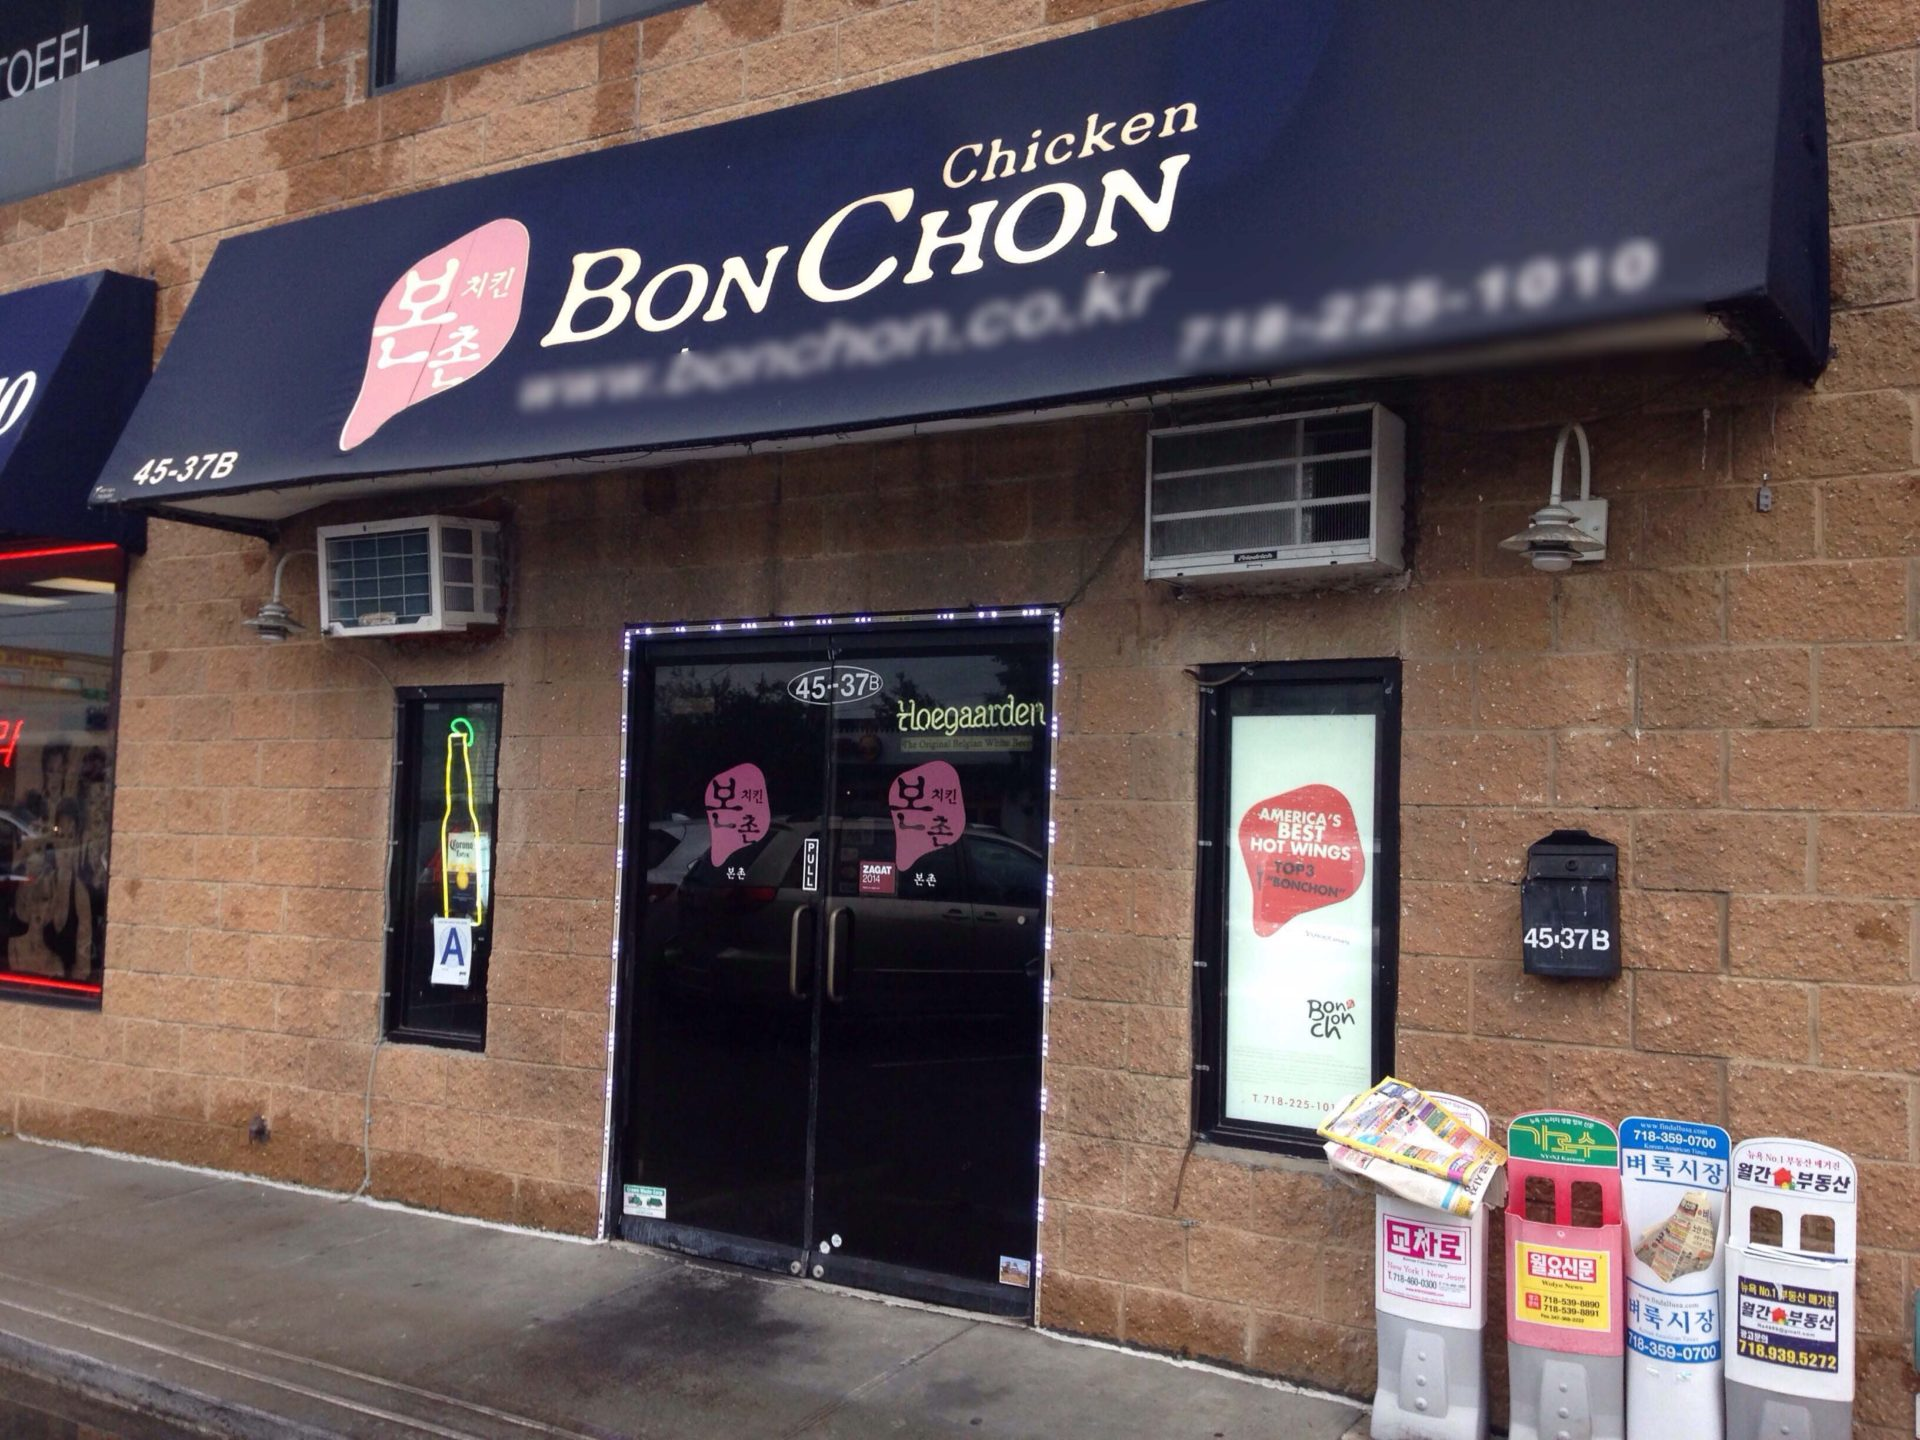 BoncChon Queens exterior. Photo by BonChon via Facebook